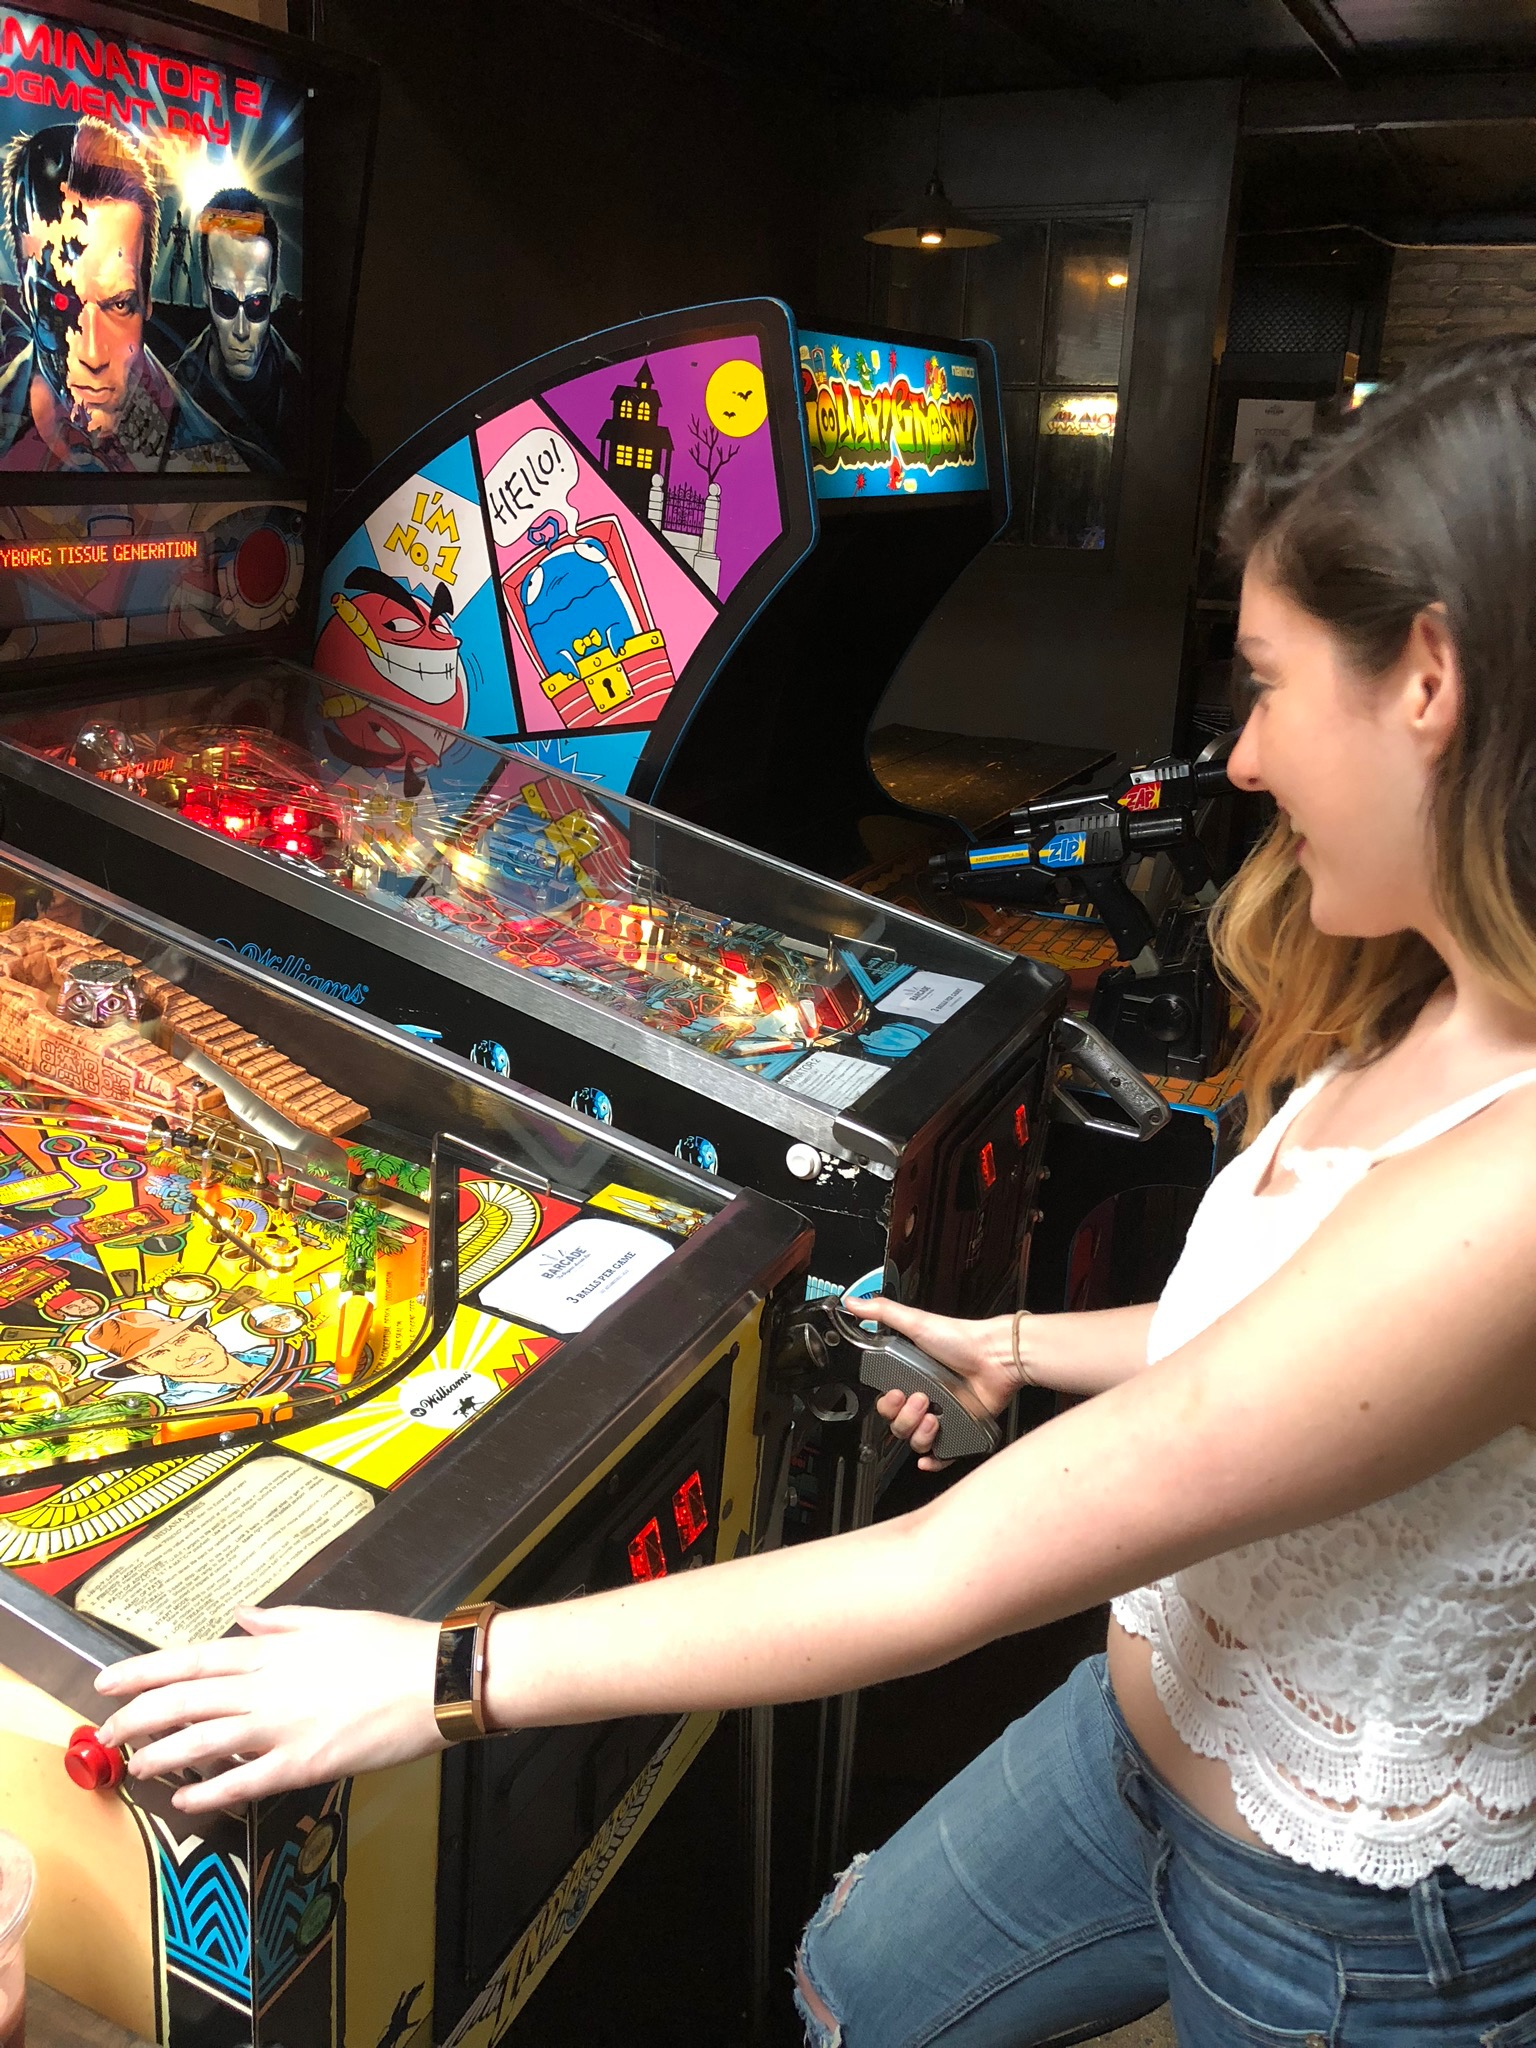 Reason #247 why Brooklyn is great: you can accidentally find an old-fashioned arcade bar and beat the high score for Indiana Jones pinball while enjoying a mimosa.